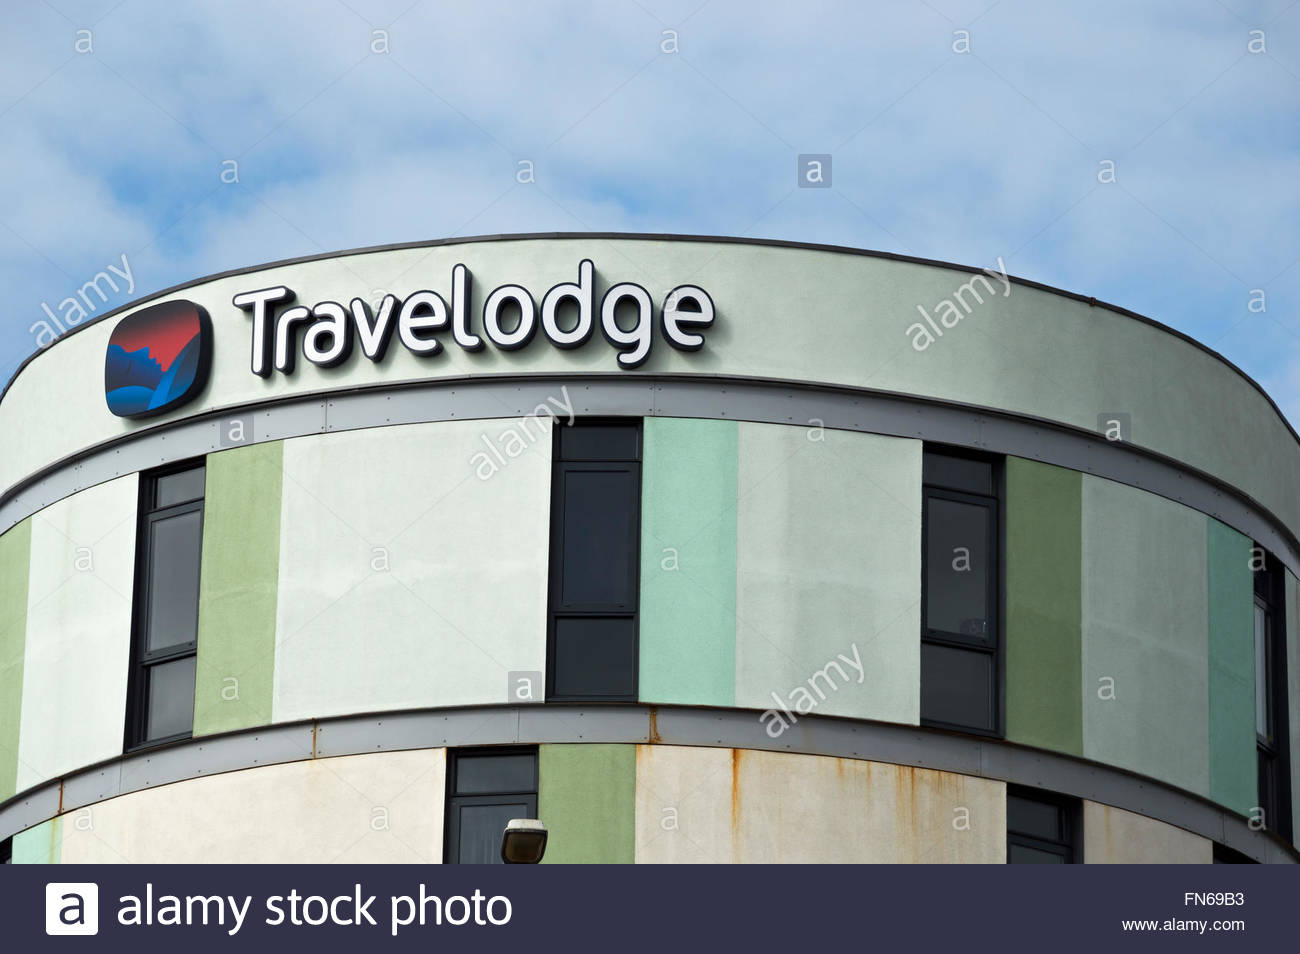 Looking up at the sign of the Maidstone Travelodge building with its many windows and multi-coloured exterior. - Stock Image